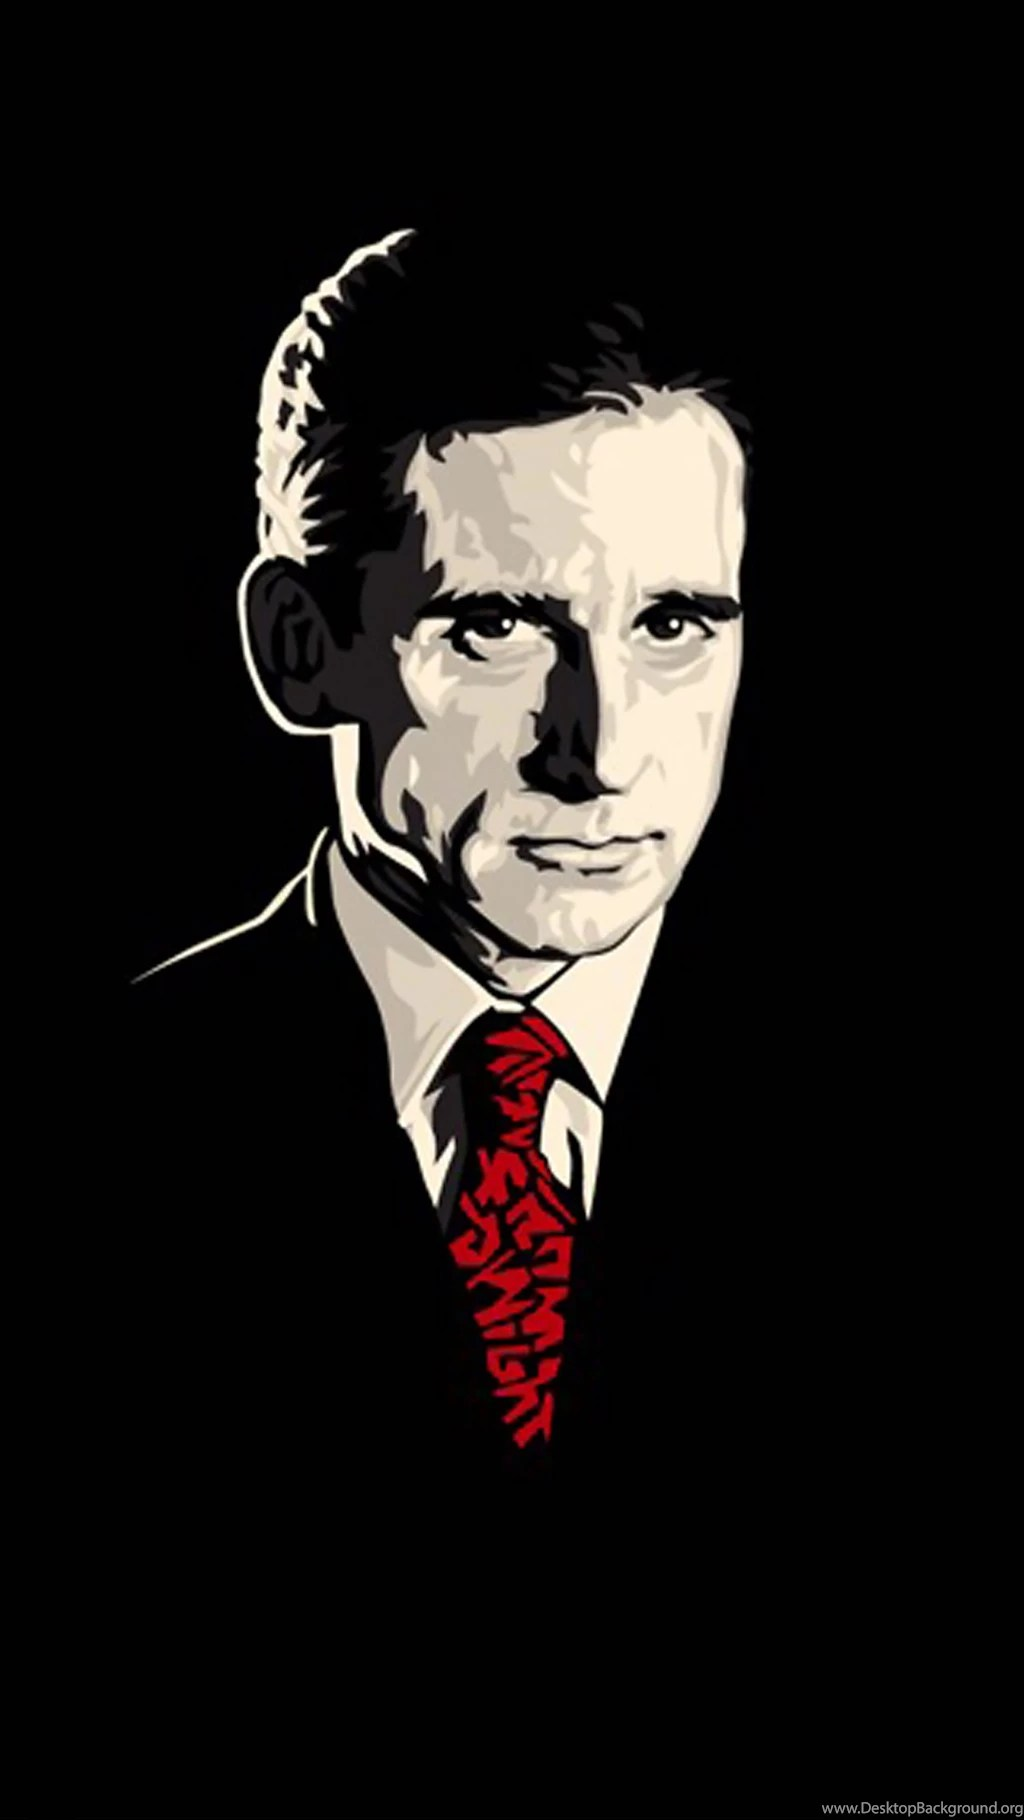 Godfather Hd Wallpaper Mobile Wallpaper Michael Scott In The Style Of The